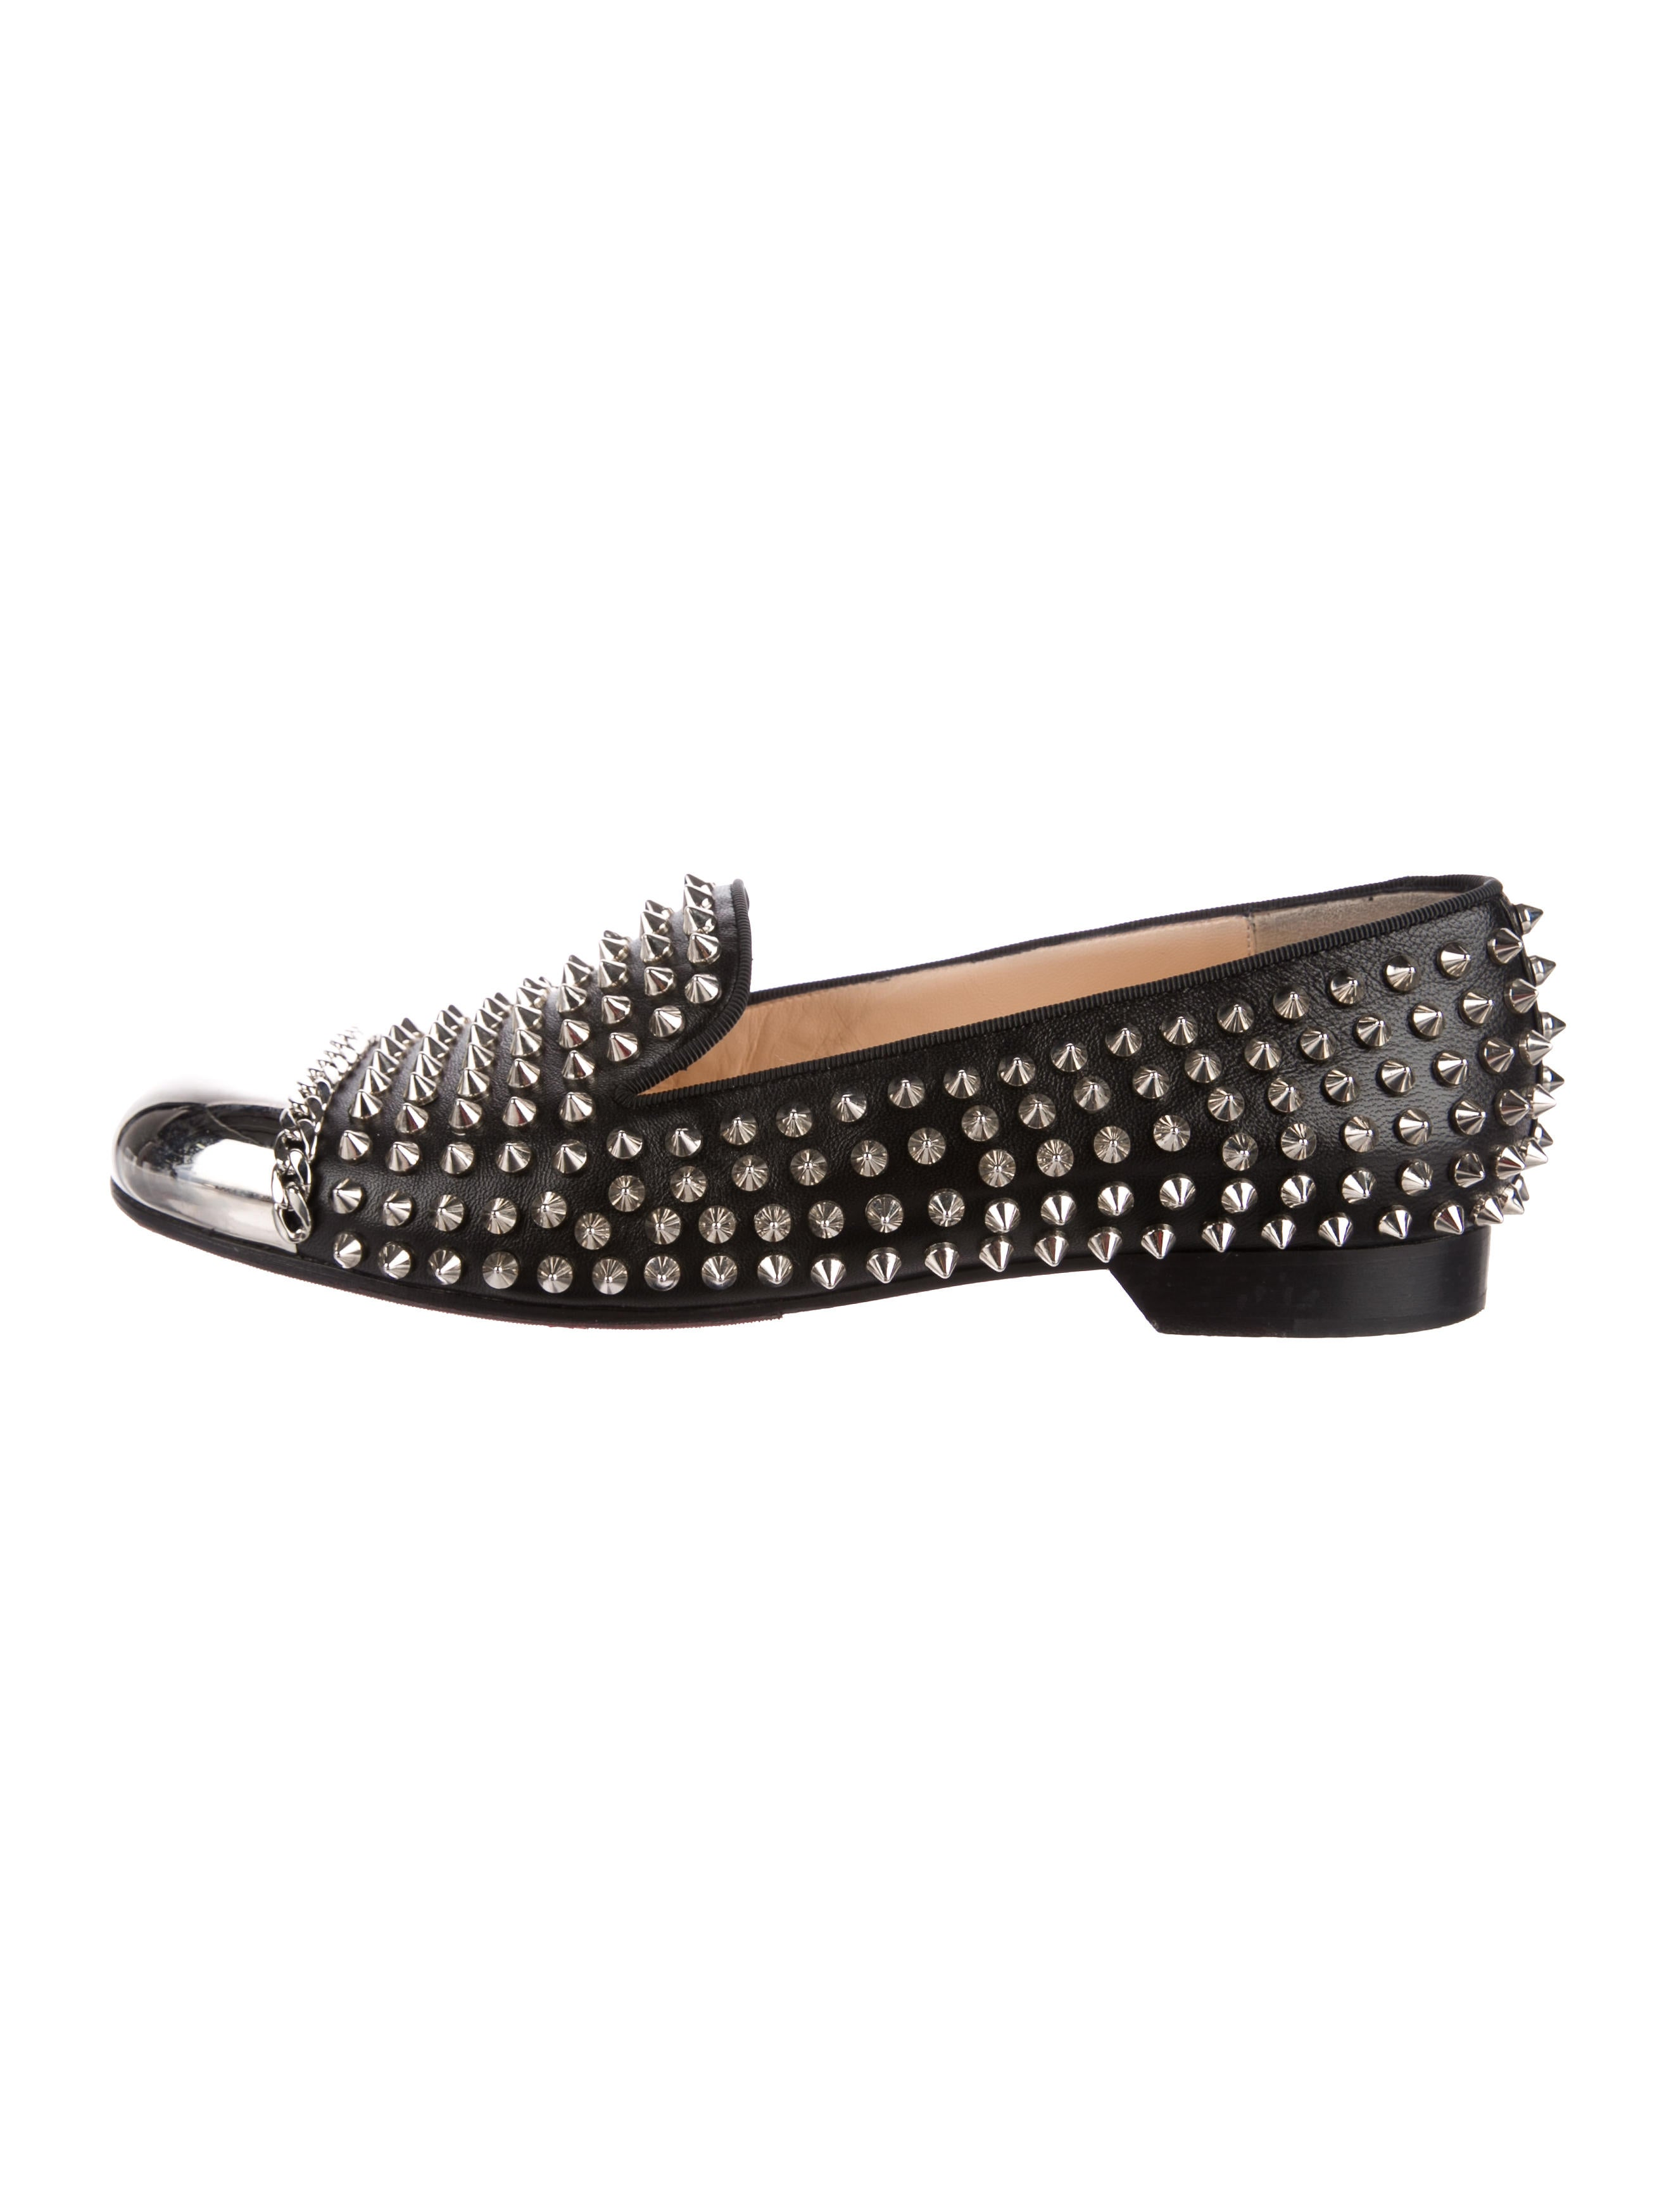 Christian Louboutin Glitz Spiked Loafers newest very cheap discount shop for cheap sale 2014 ex4jmY88